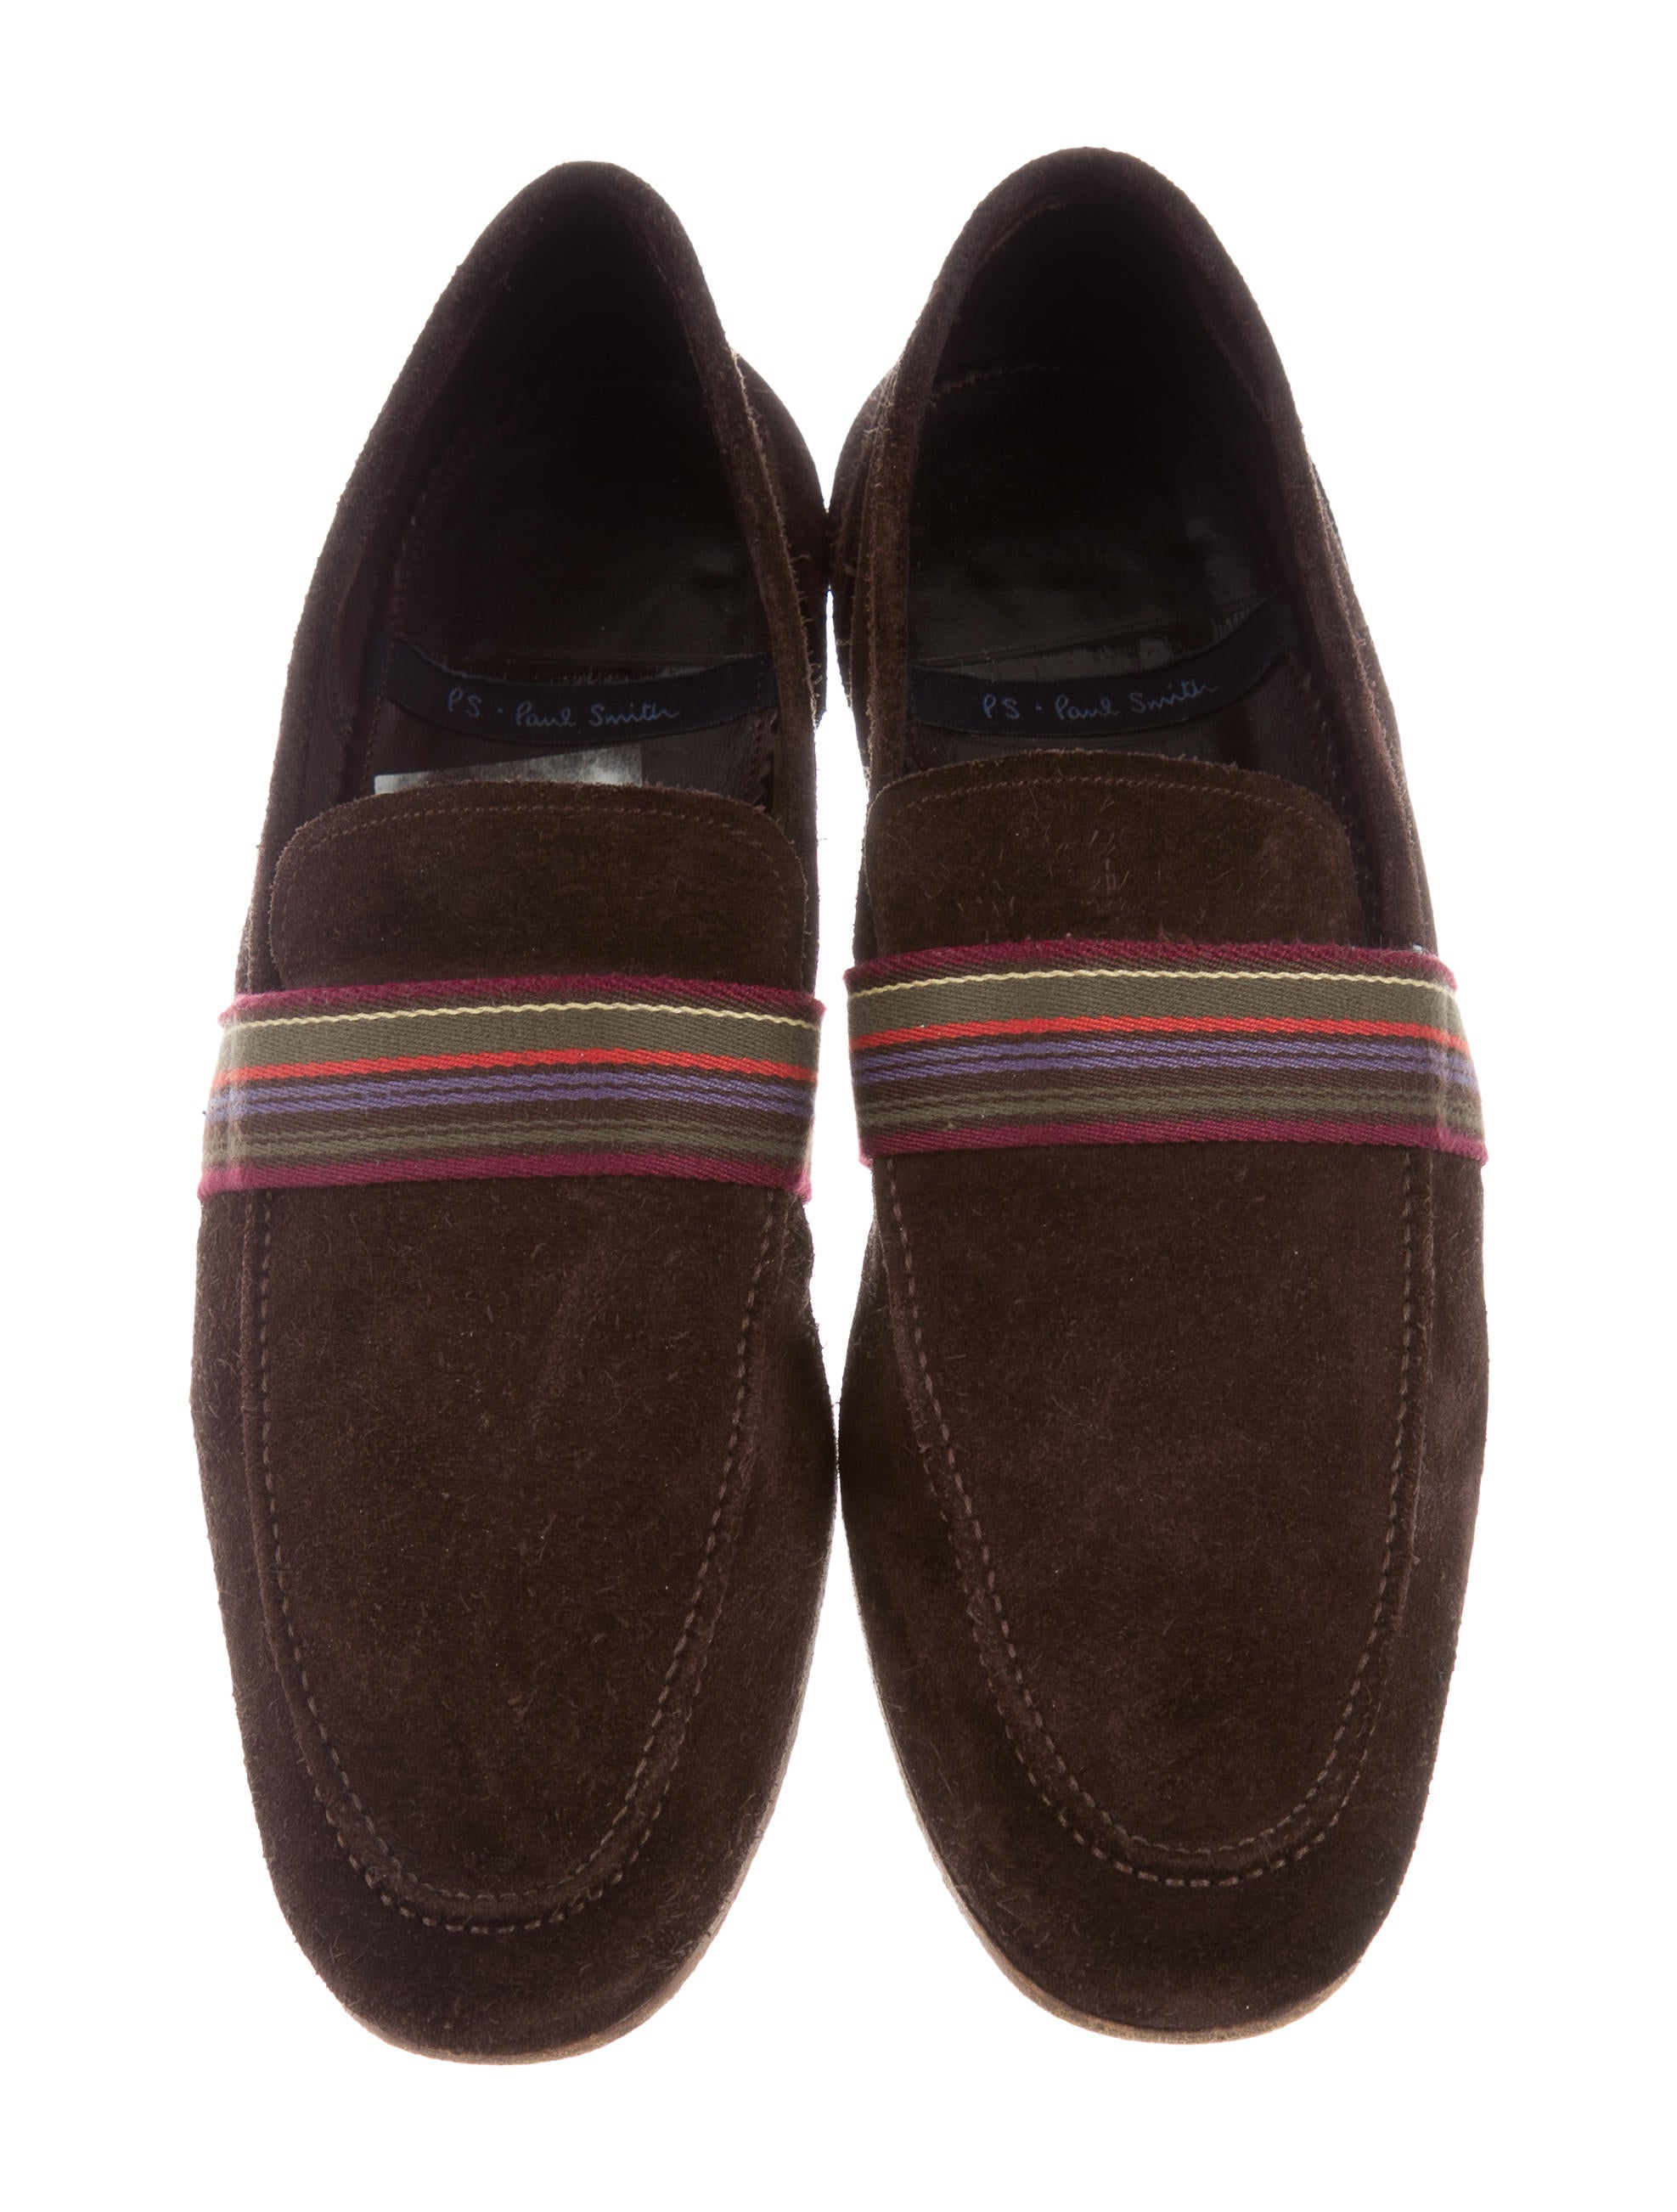 PS by Paul Smith Suede Striped Smoking Slippers Shoes  : WPSPS206723enlarged from www.therealreal.com size 1975 x 2605 jpeg 349kB